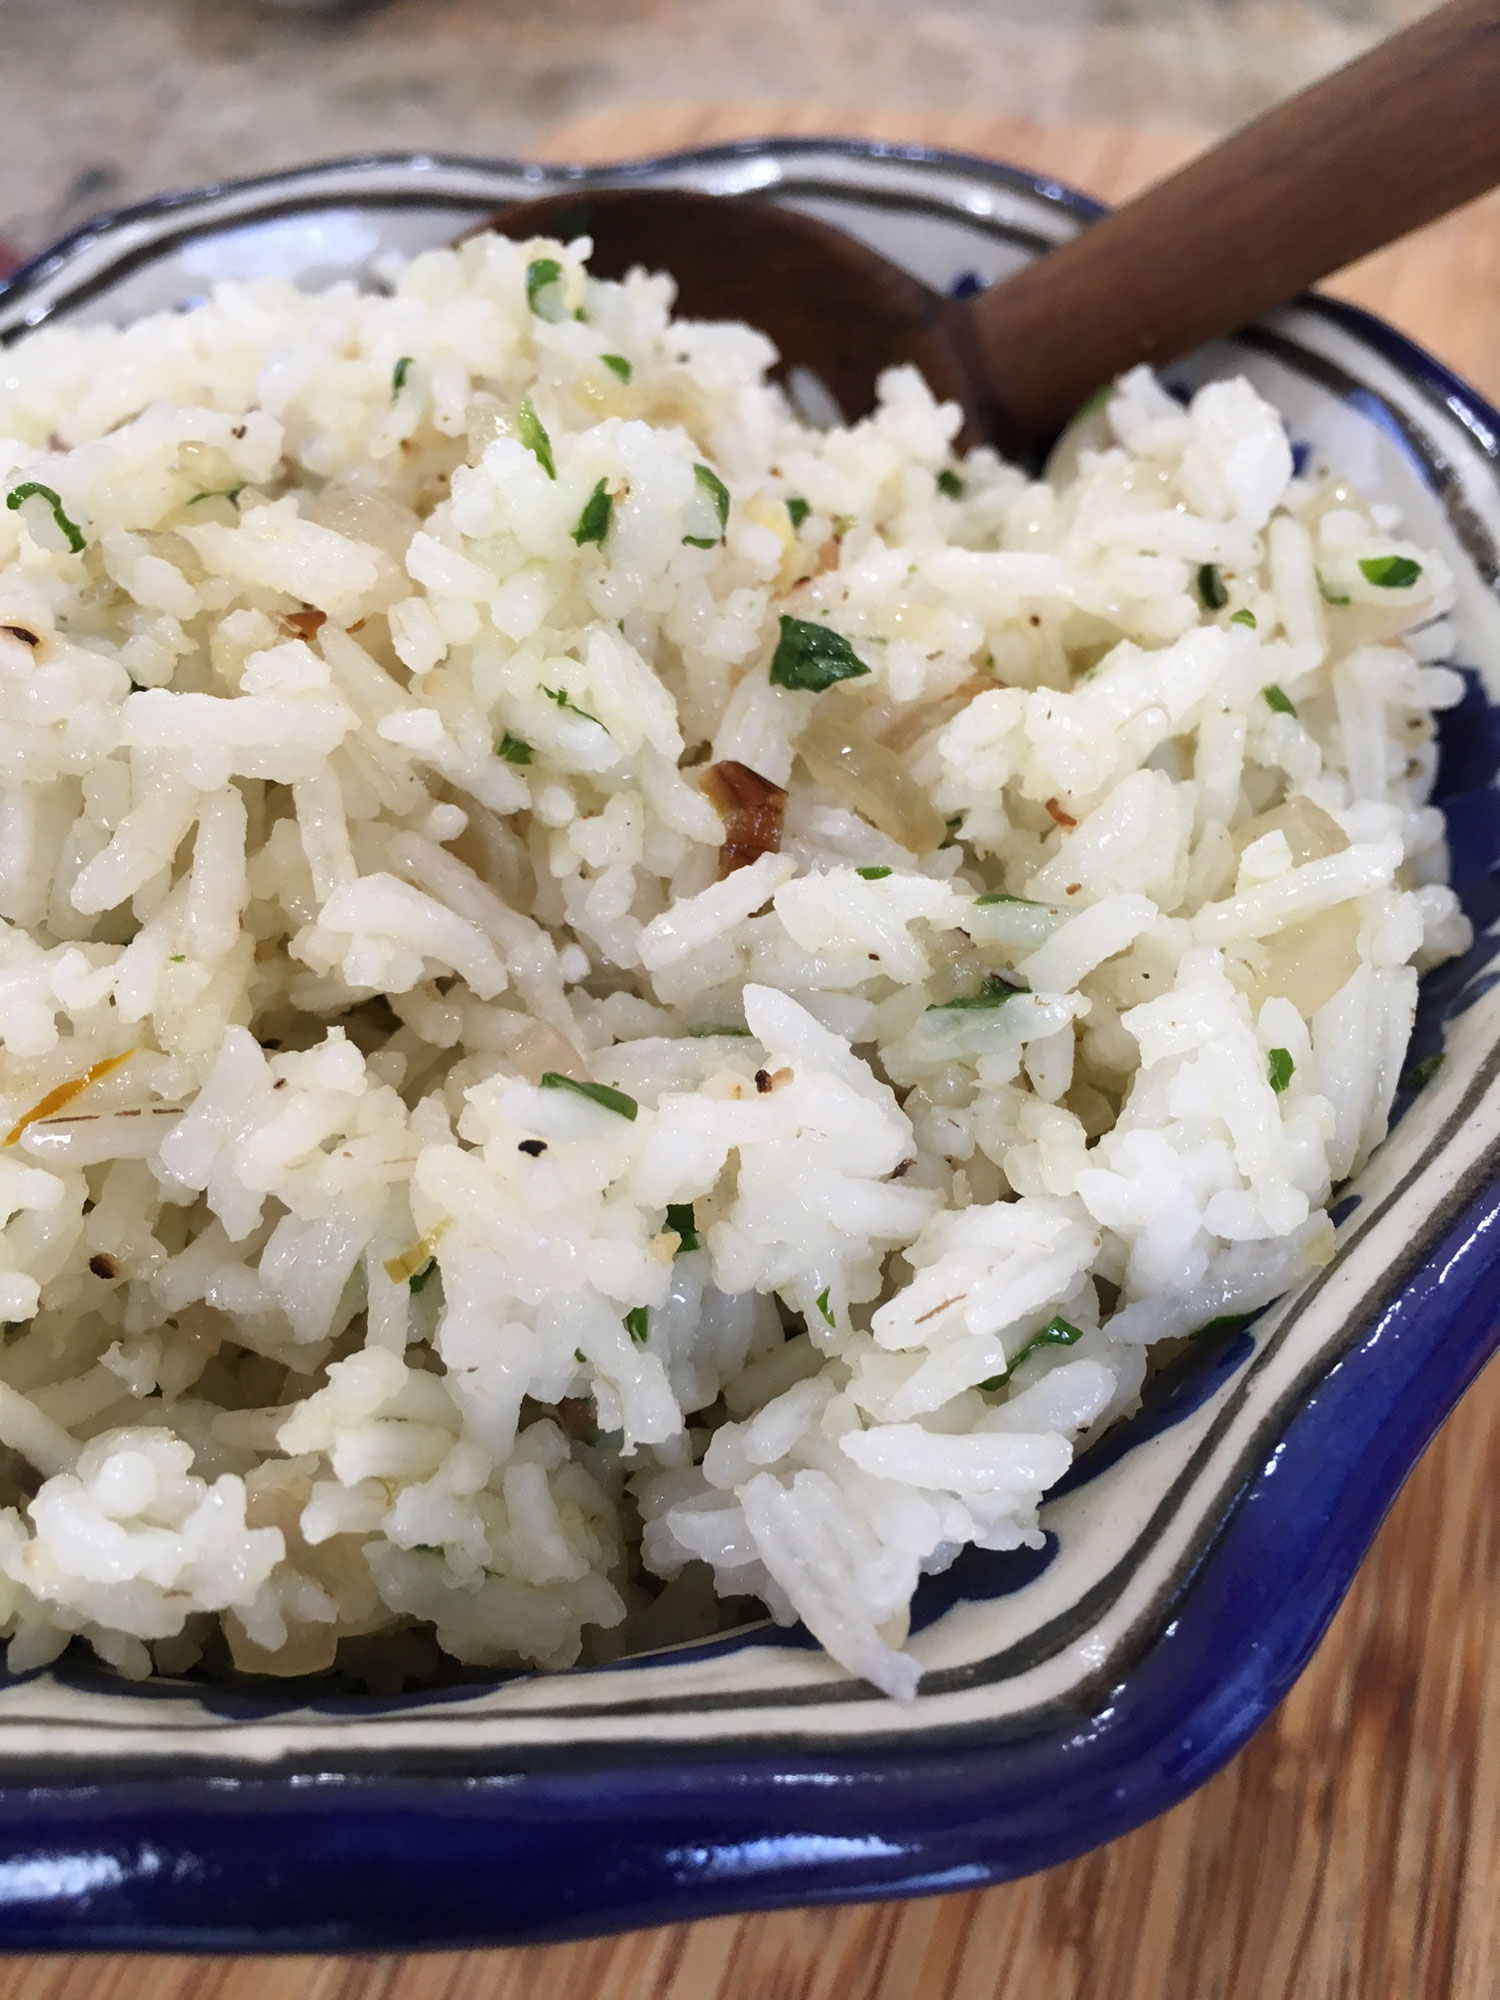 Basmati rice sauteéd with shallots and cilantro